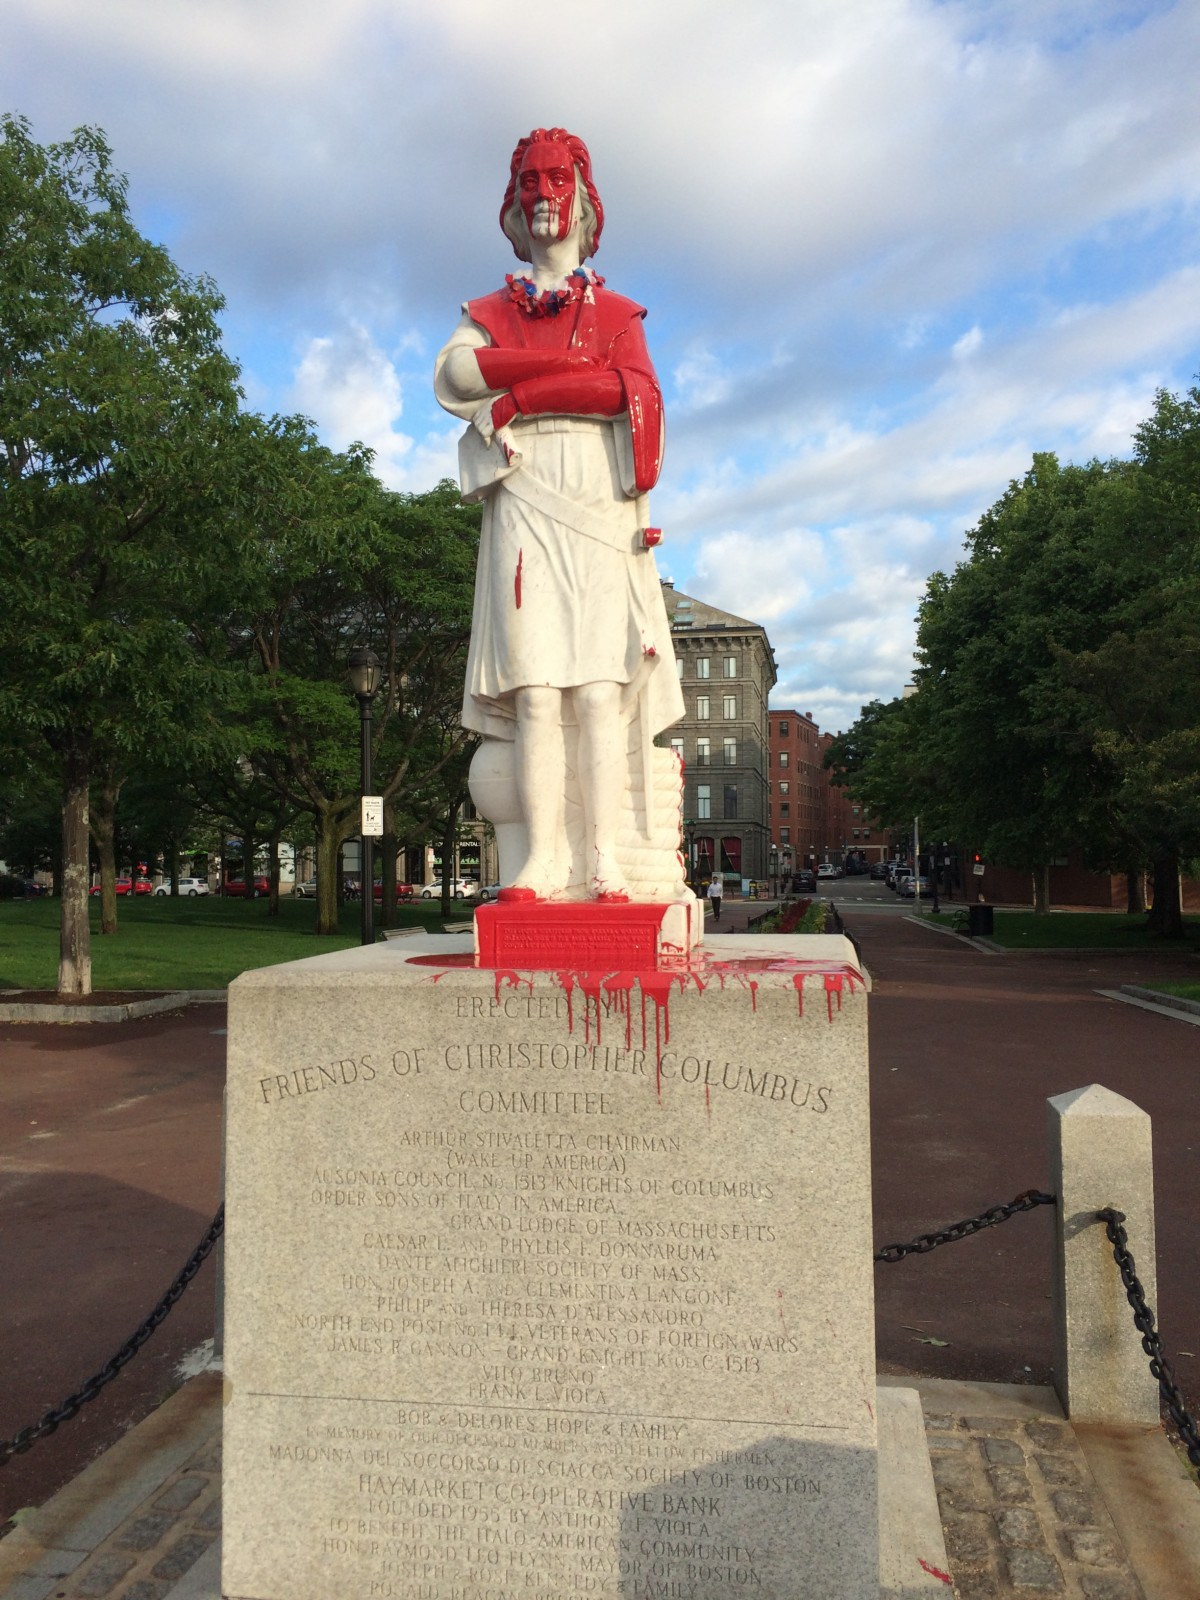 The front of the Christopher Columbus statue. Photo via NorthEndWaterfront.com